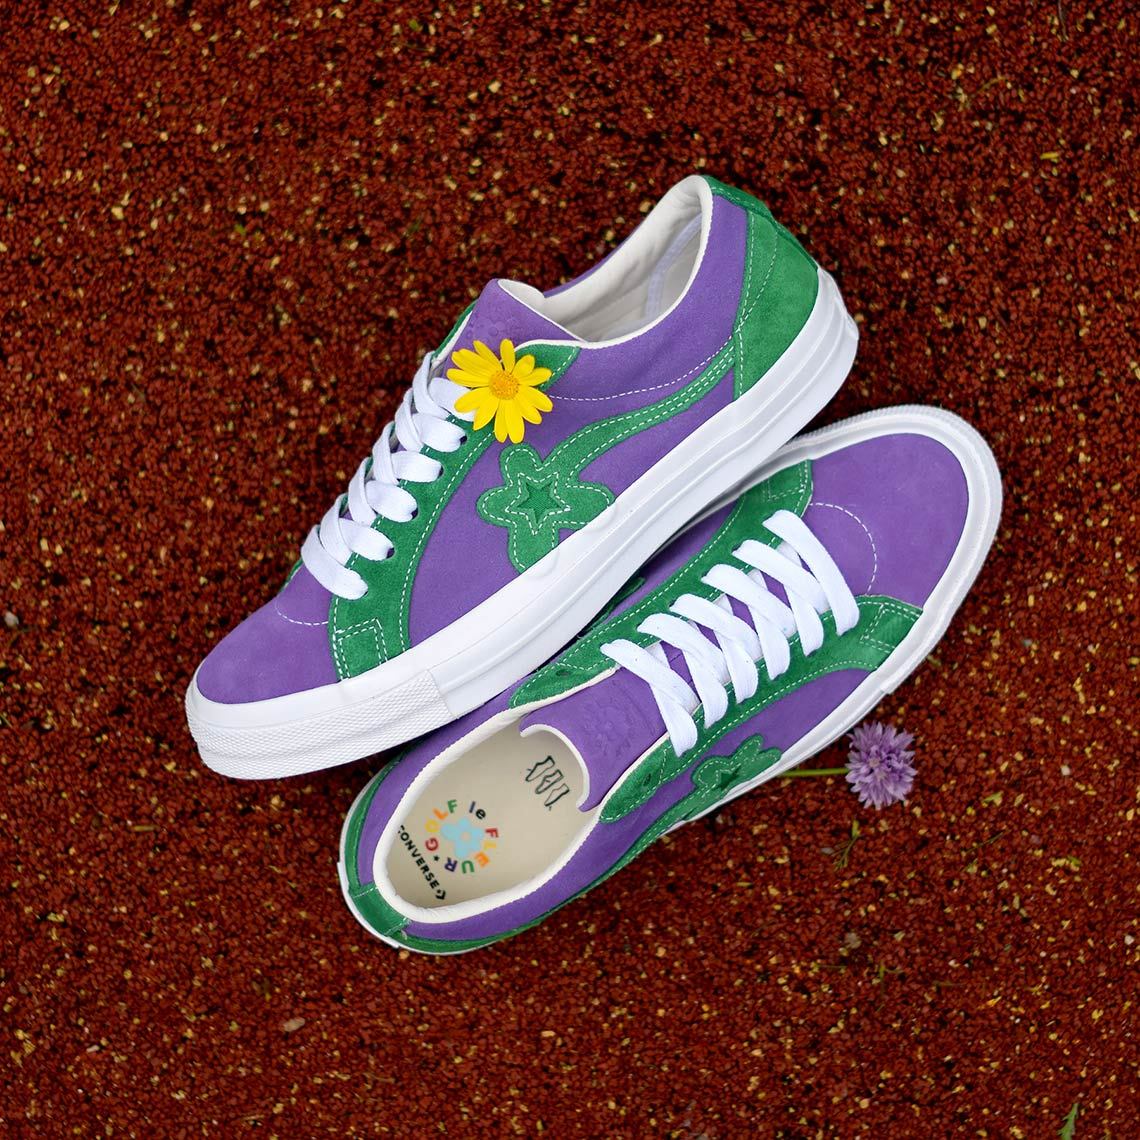 0906885e4579 Tyler The Creator x Converse Golf Le Fleur Pack Release Info ...